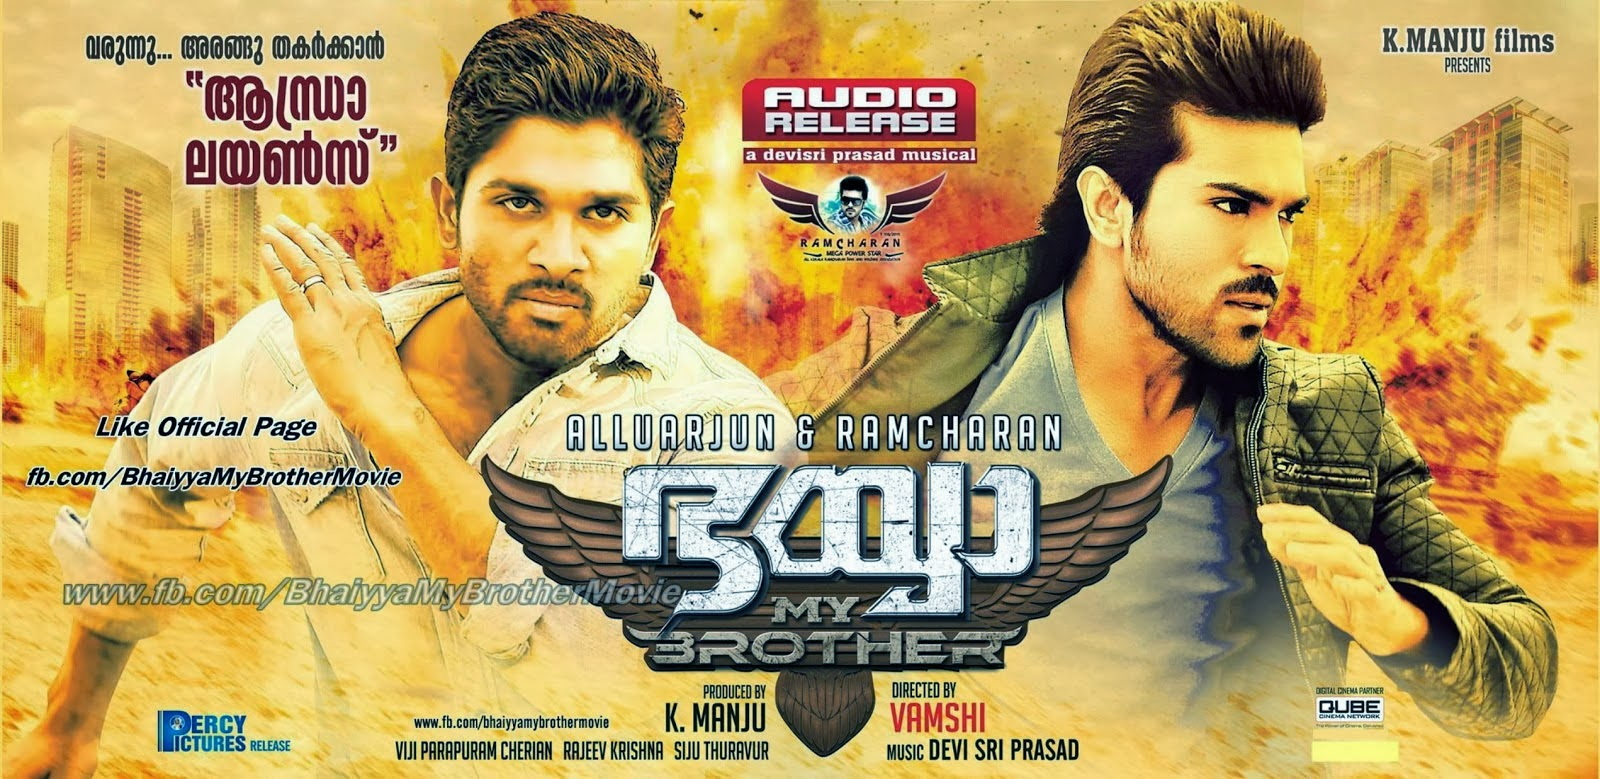 Yevadu 2015 Hindi Dubbed Movie HD Watch Online, Ram Charan, Allu Arjun